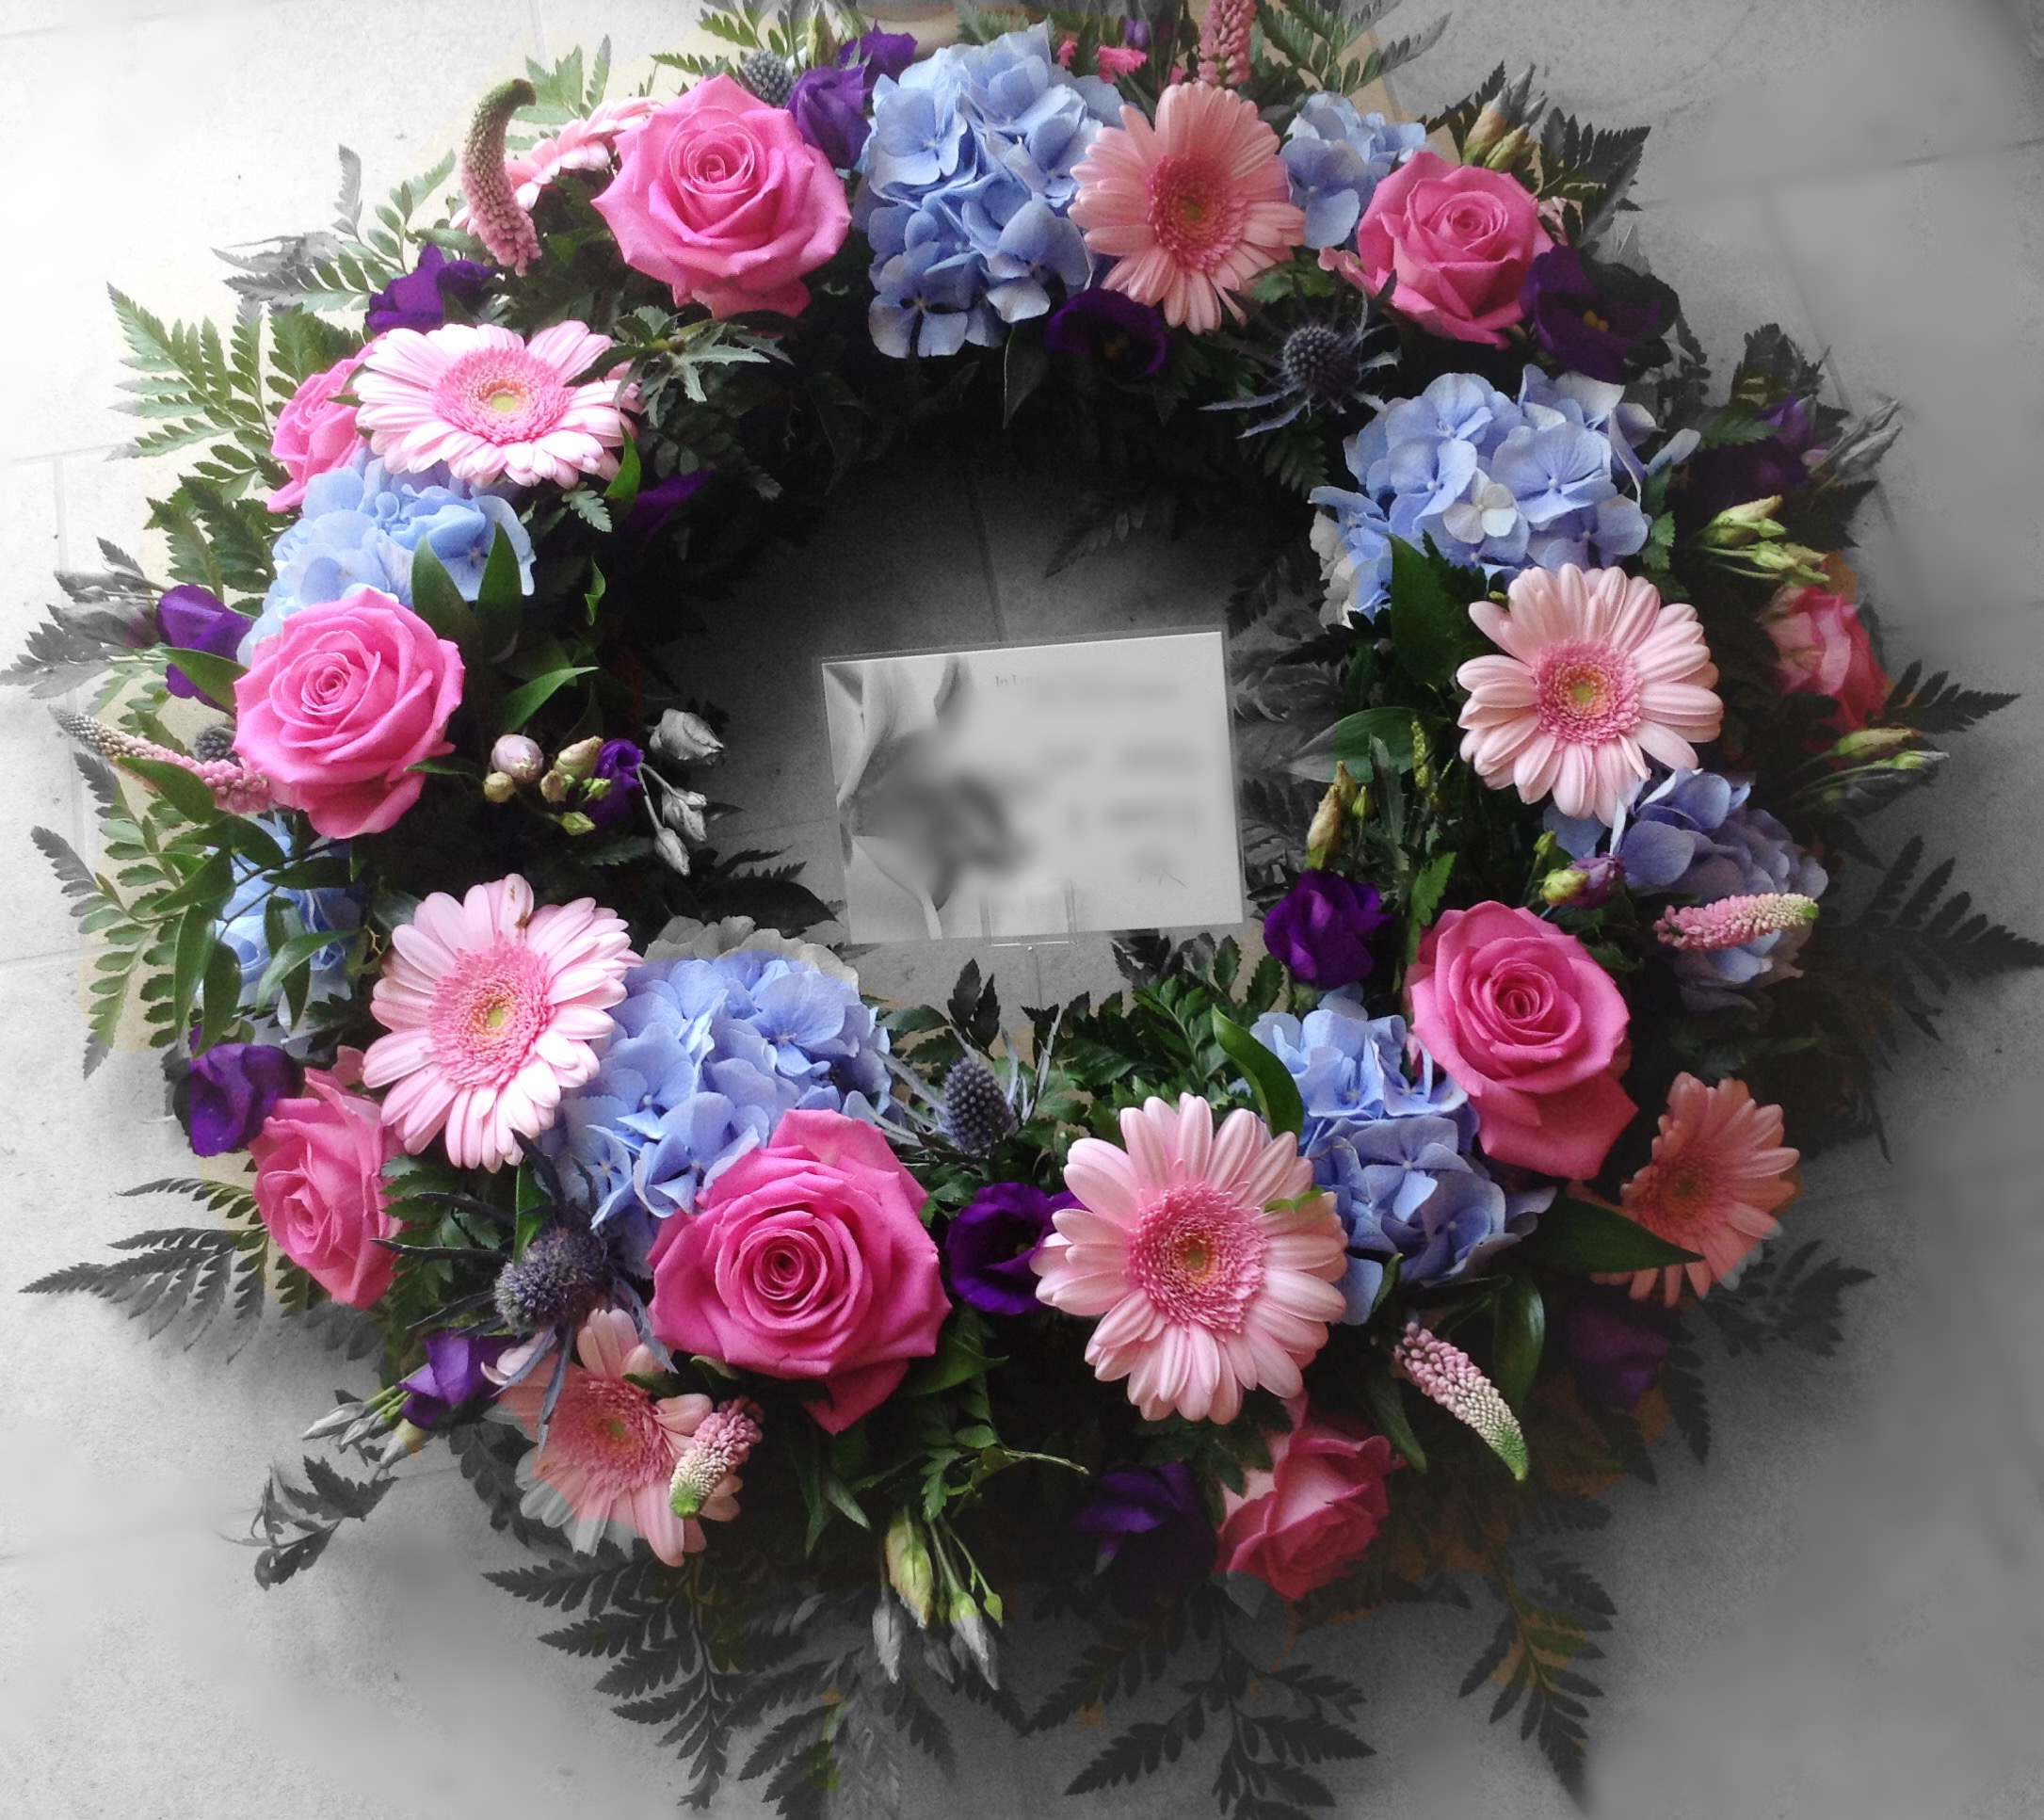 Funeral Wreaths In Dumfries Galloway